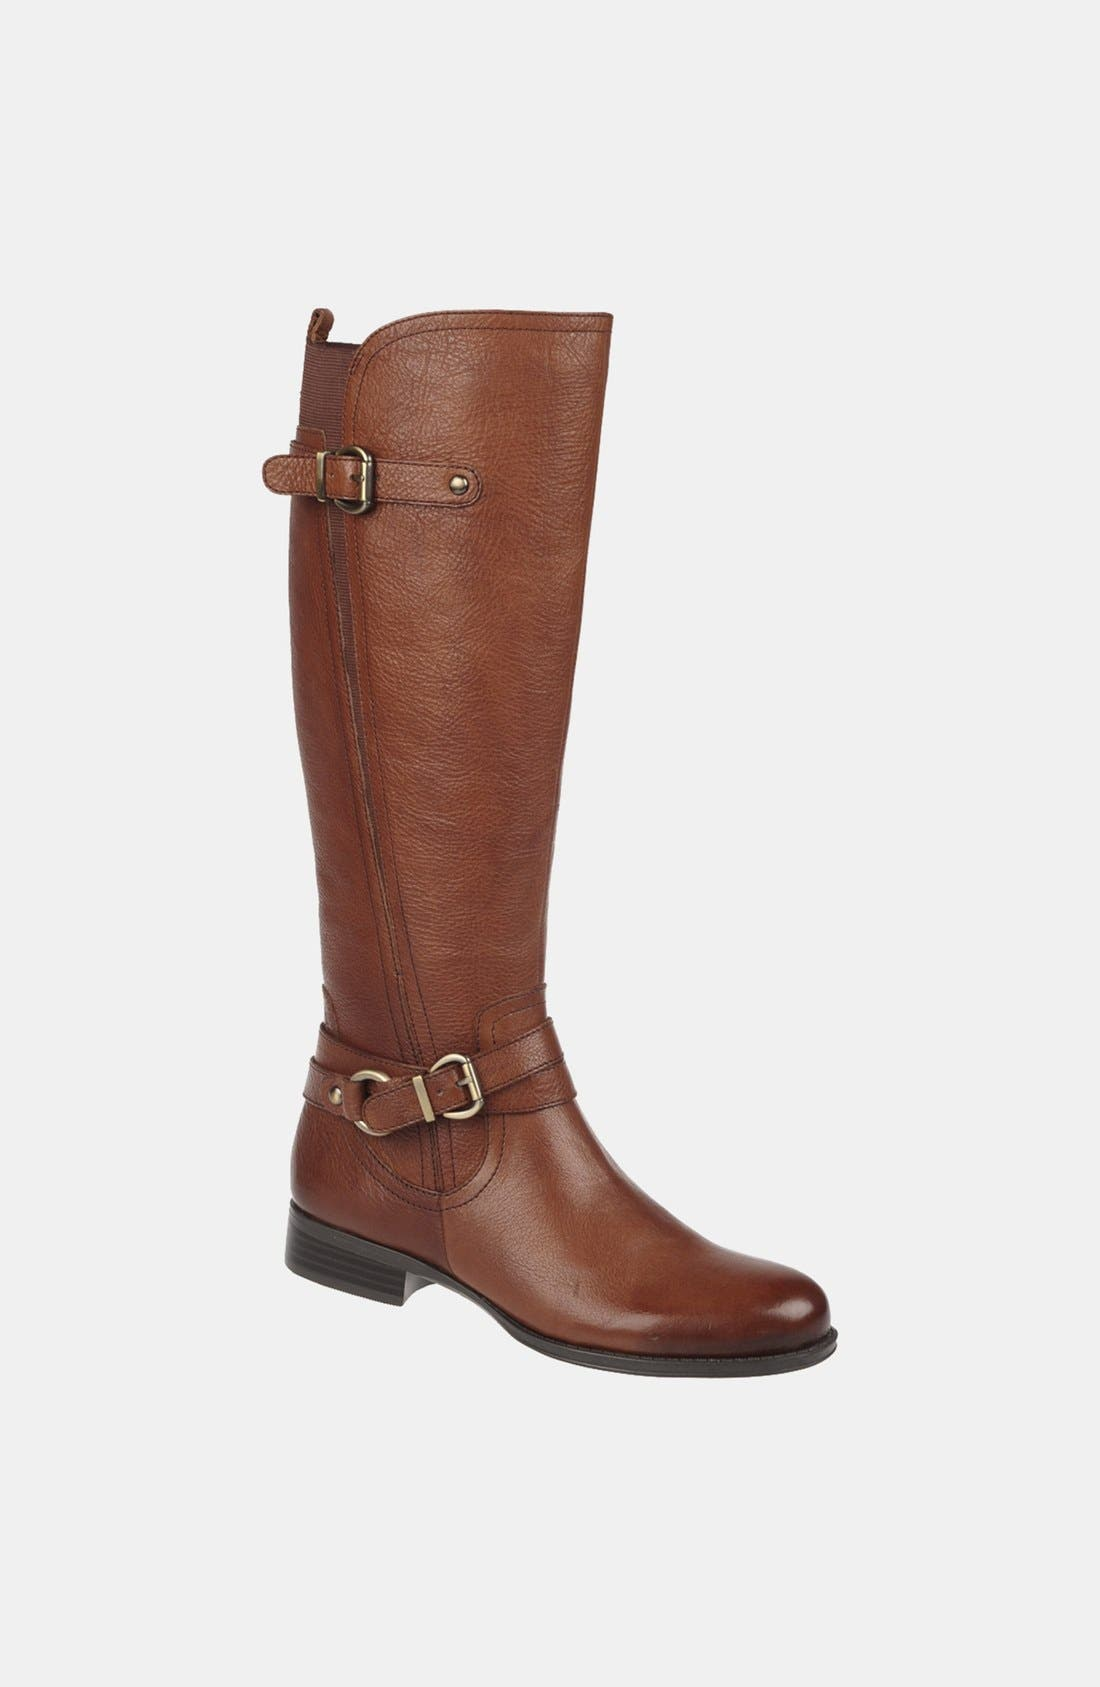 Alternate Image 1 Selected - Naturalizer 'Juletta' Tall Riding Boot (Wide Calf) (Online Only)